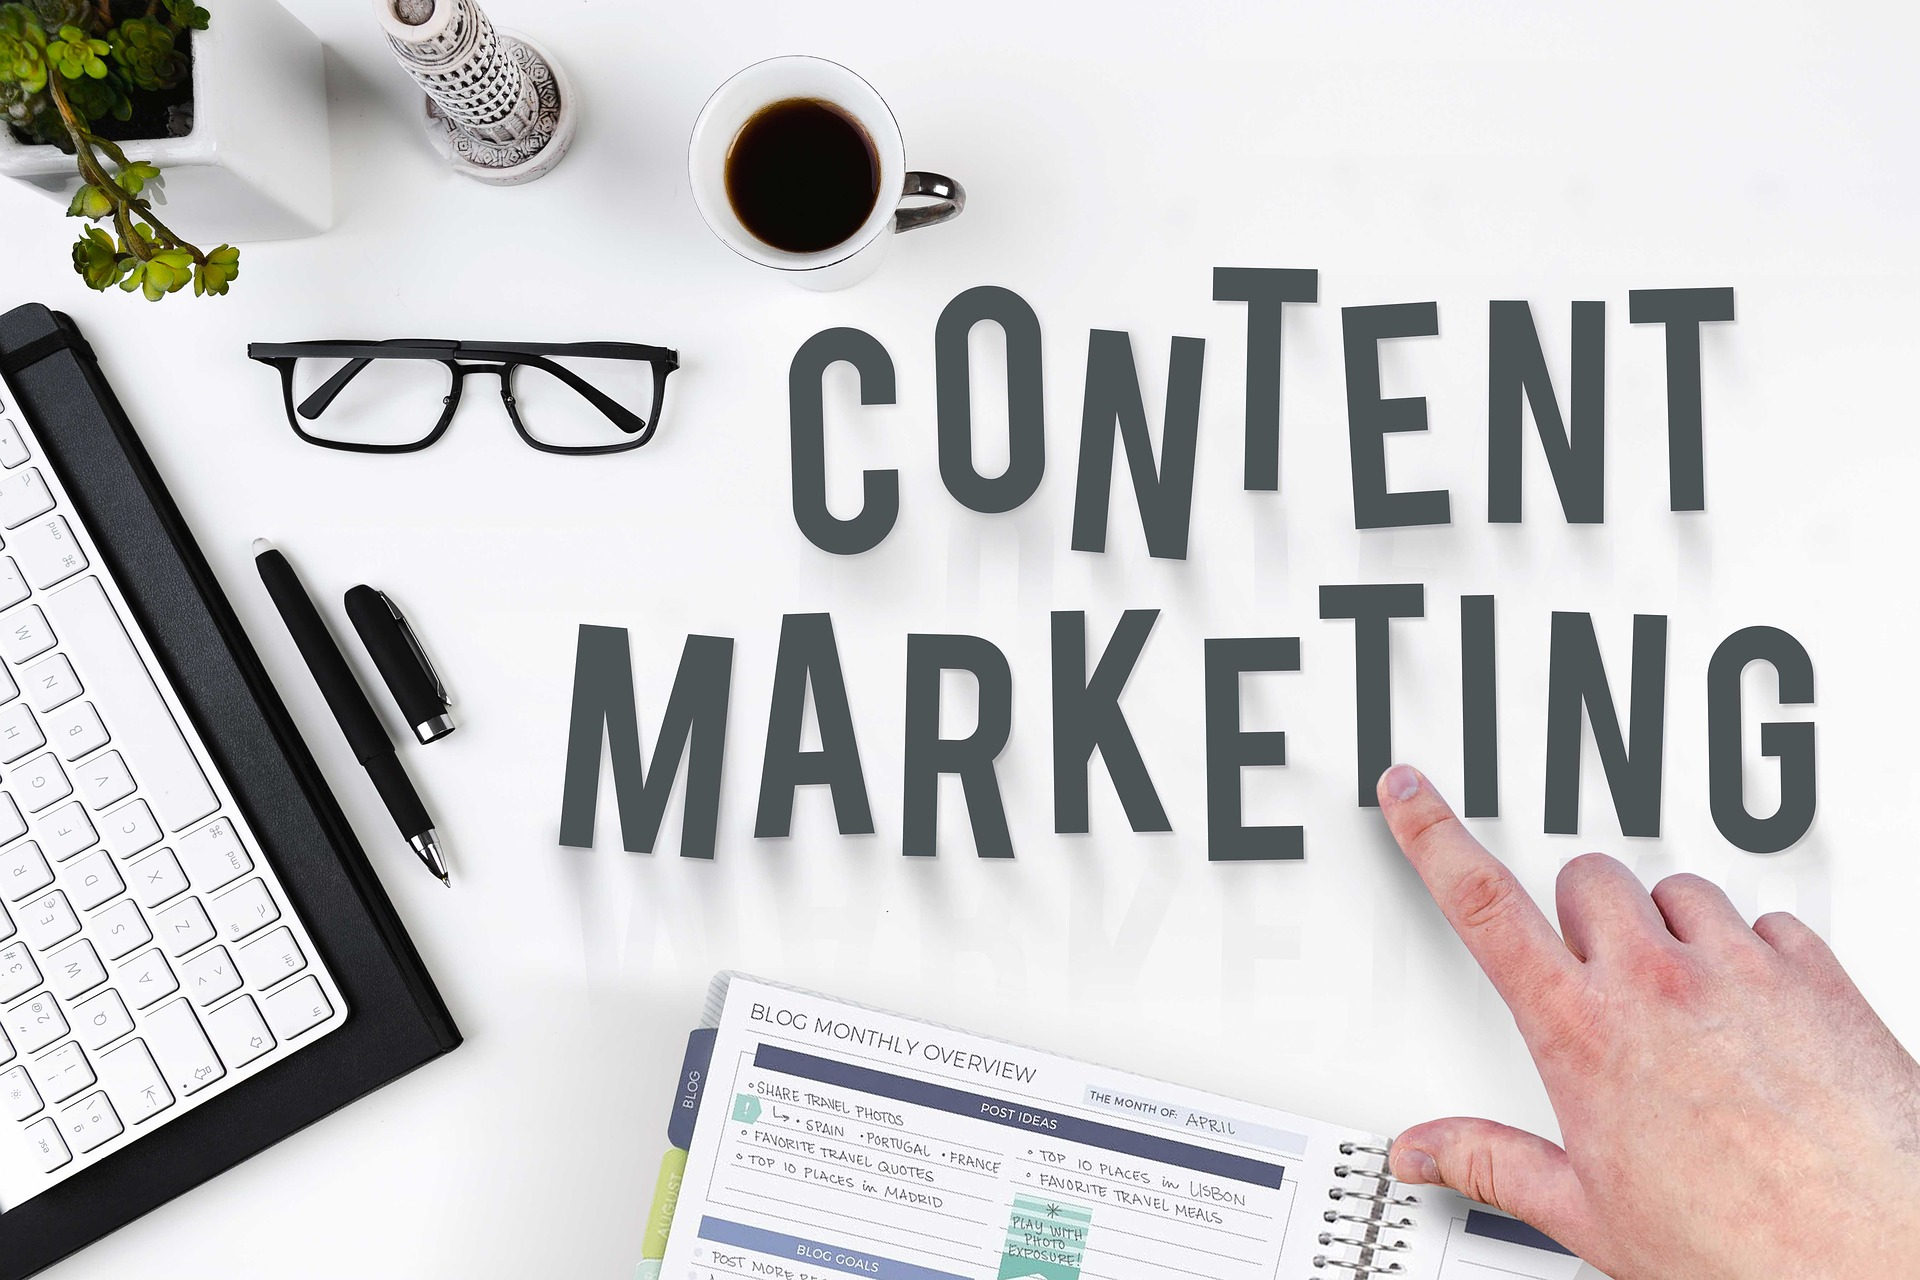 content is an often overlooked way to drive sales.